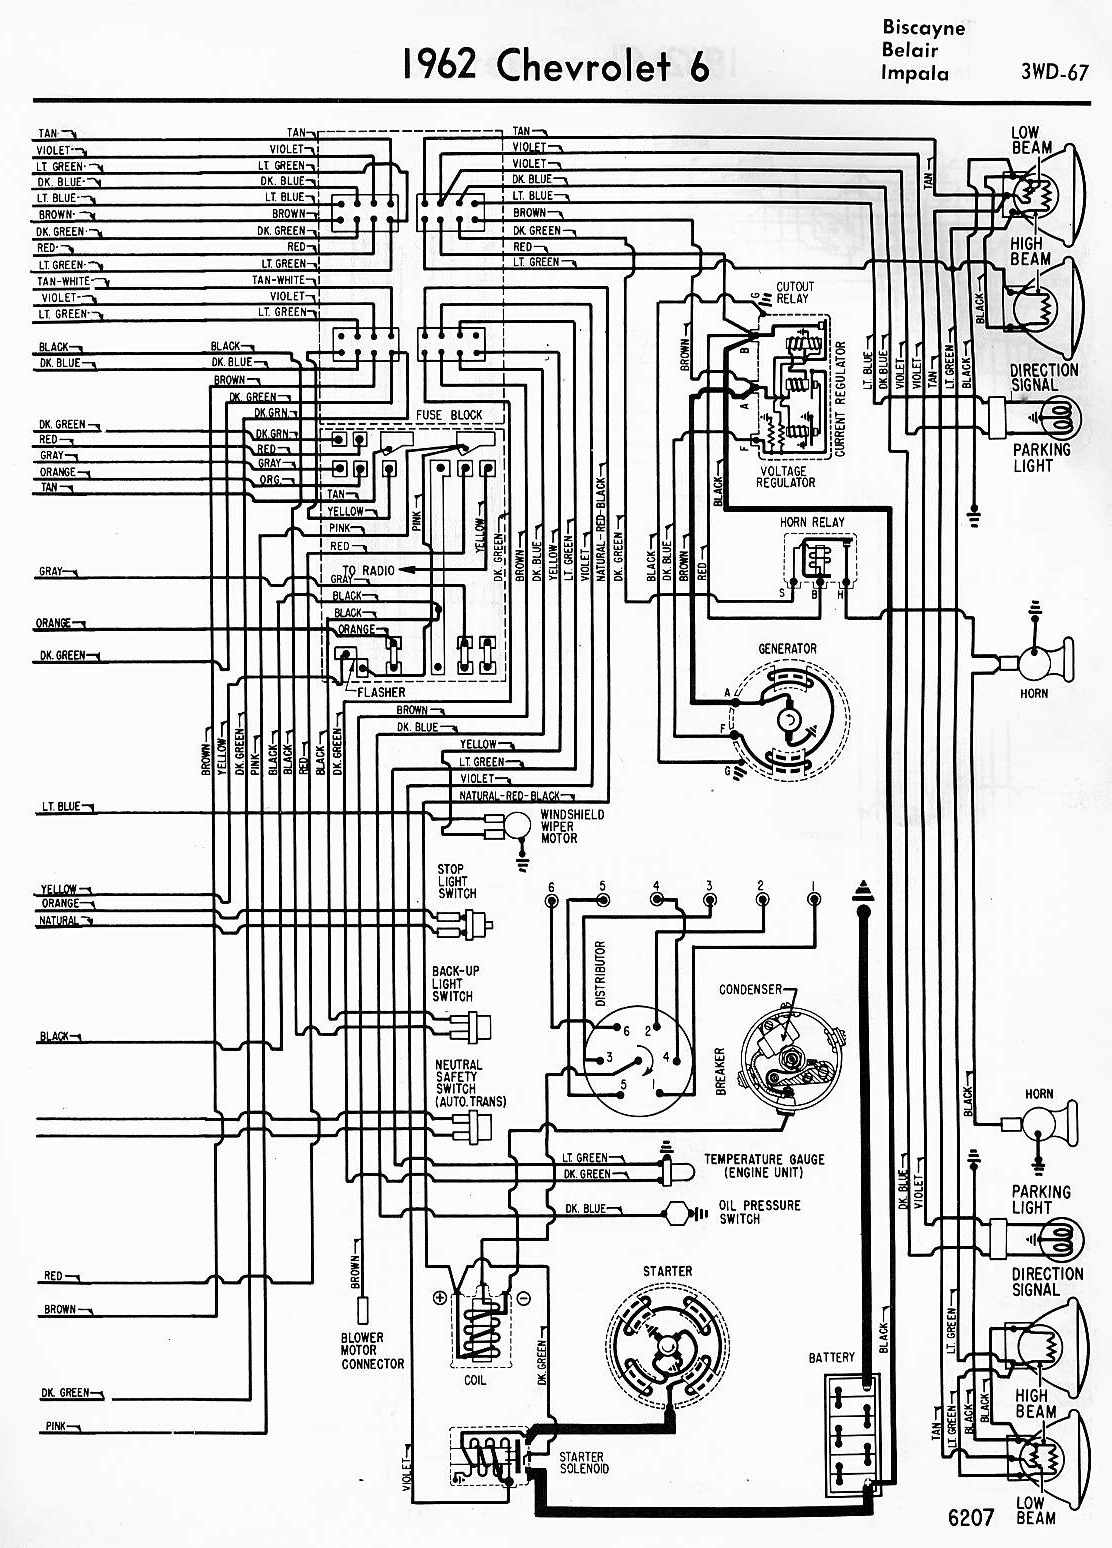 Electrical+Wiring+Diagram+Of+1964+Chevrolet+6 electrical wiring diagram of 1962 chevrolet 6 all about wiring 1963 corvair wiring diagram at bakdesigns.co